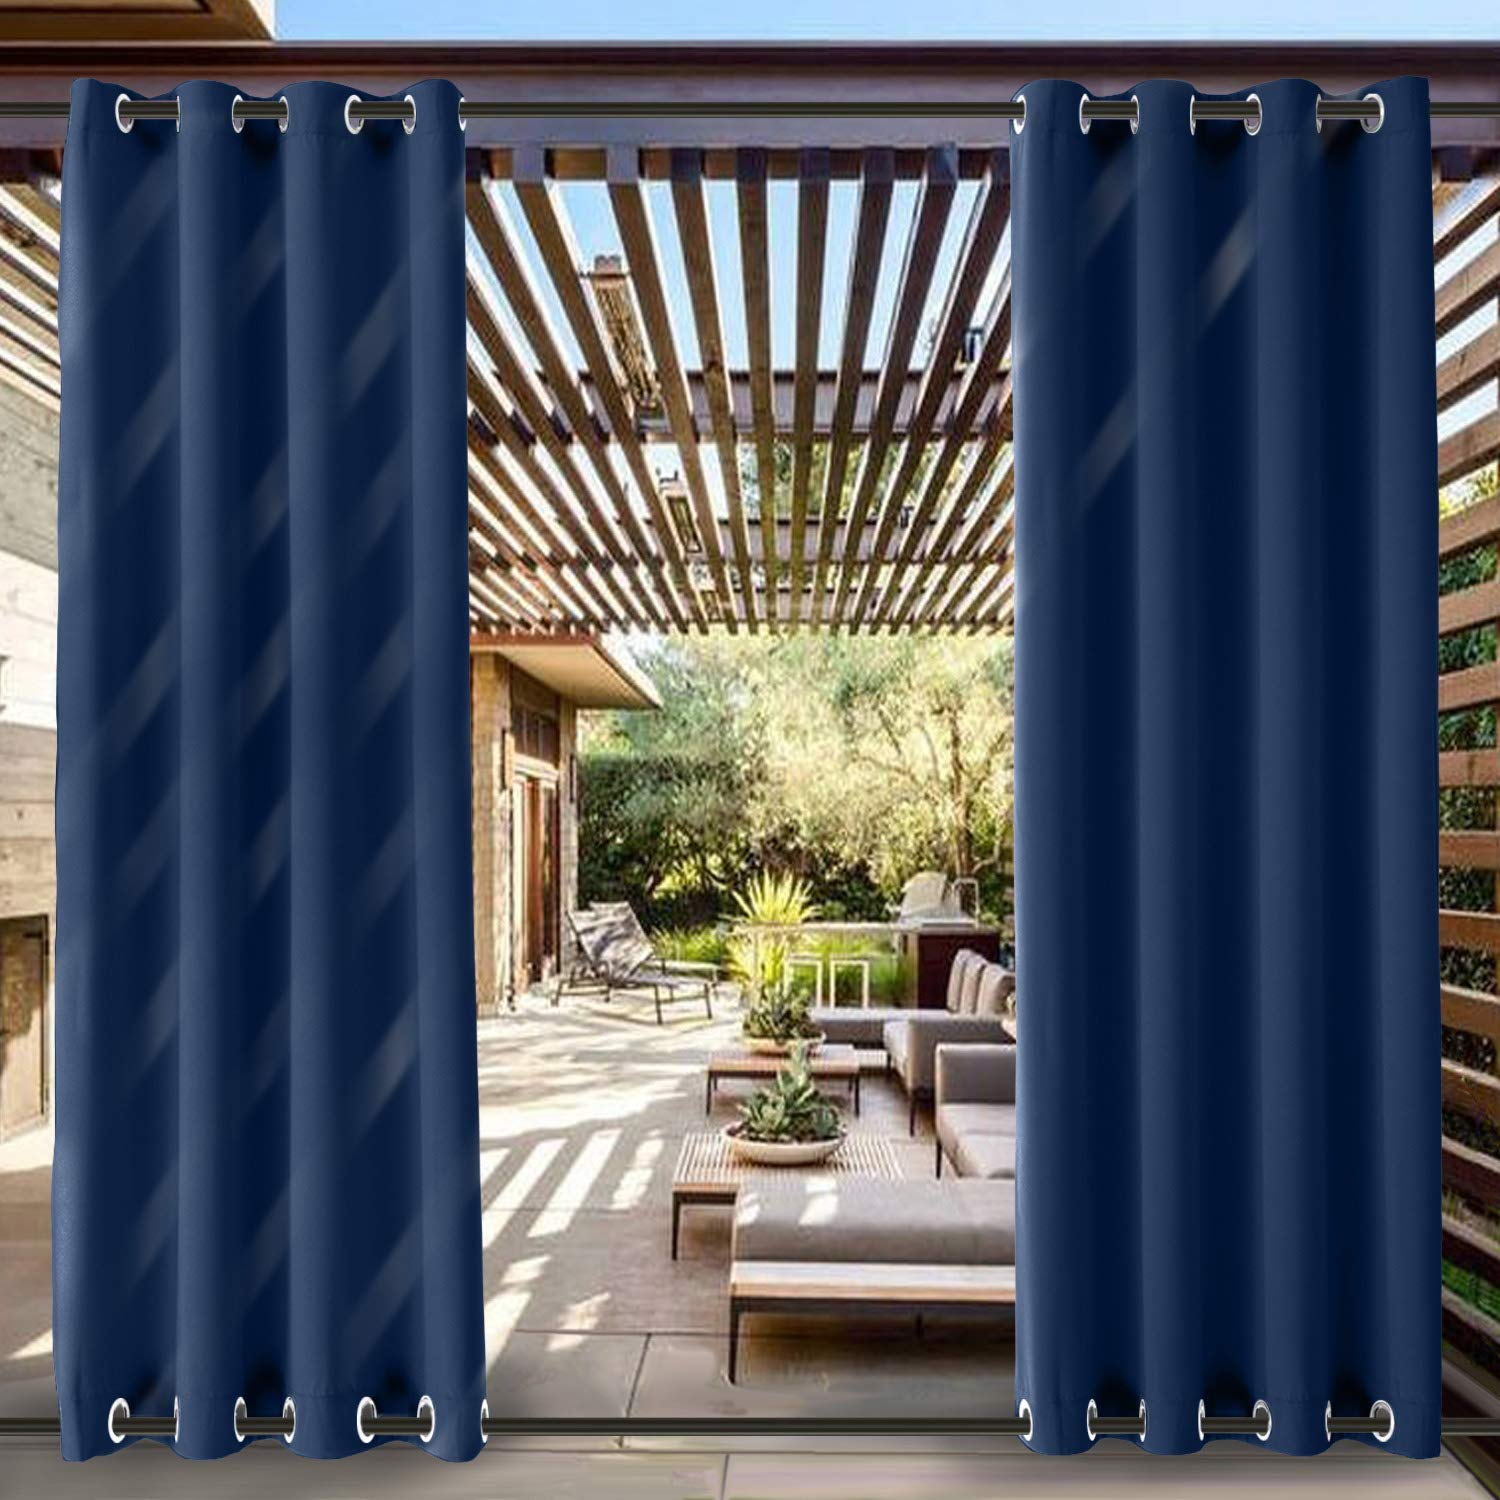 ChadMade Windproof Outdoor Curtain with Top Bottom Grommet Navy 200'' W x 96'' L, Waterproof Patio Cabana Porch Gazebo Panel Drapery (1 Panel)